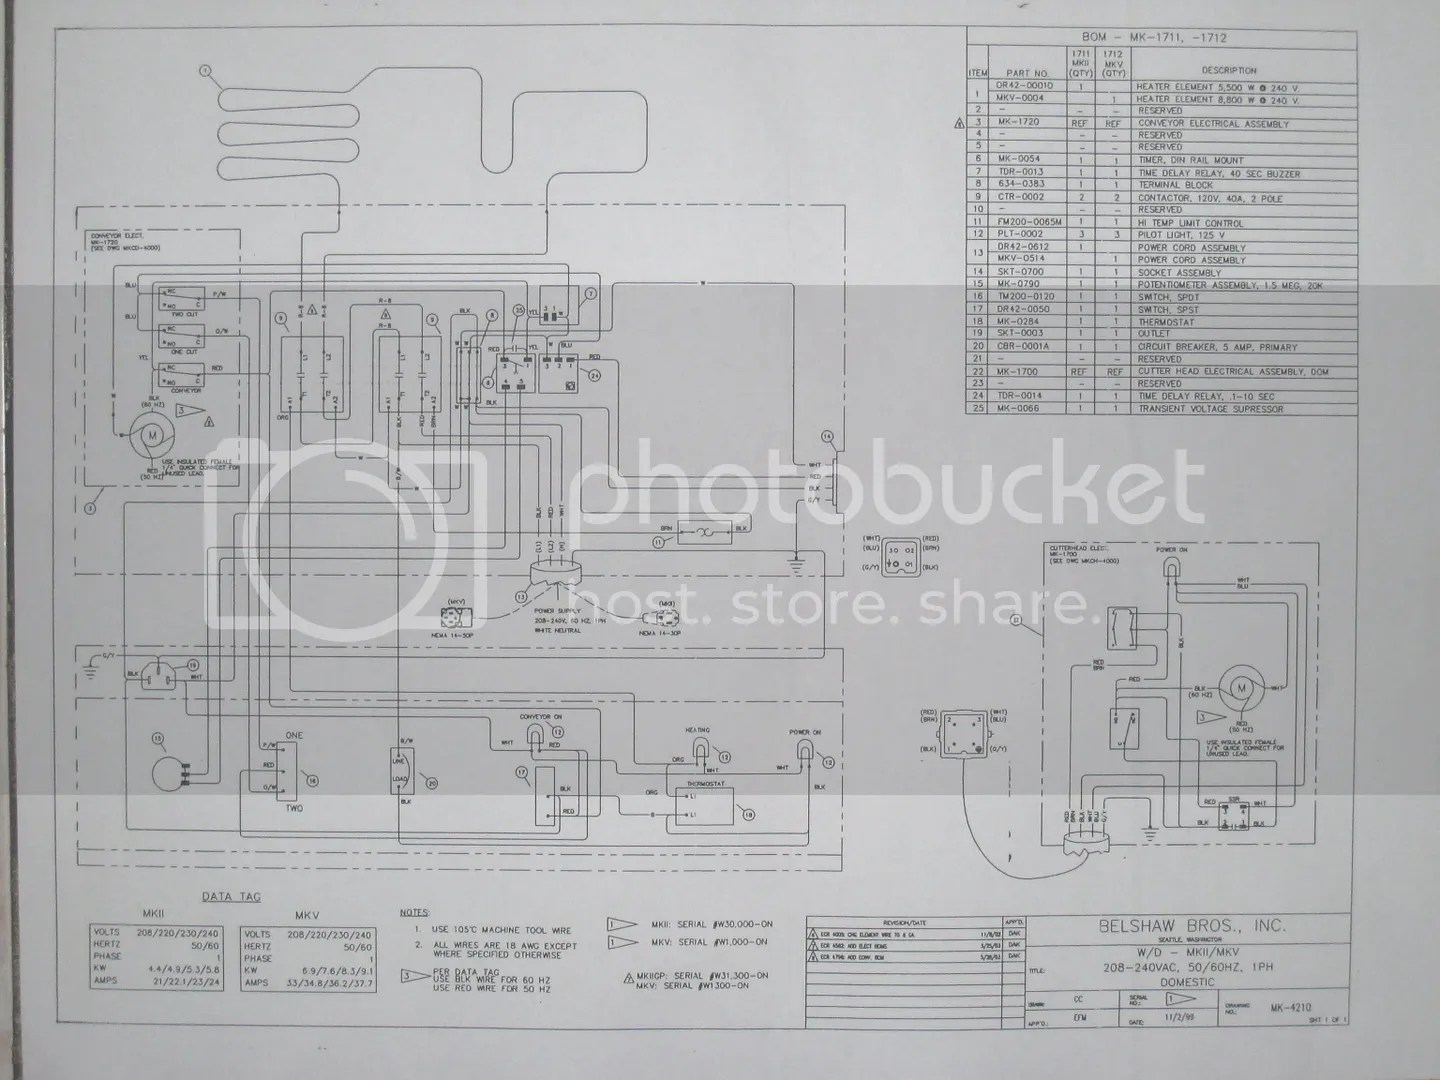 Wiring Diagram For 120 Volt 30 Plugs On Polarized Plug Wiring